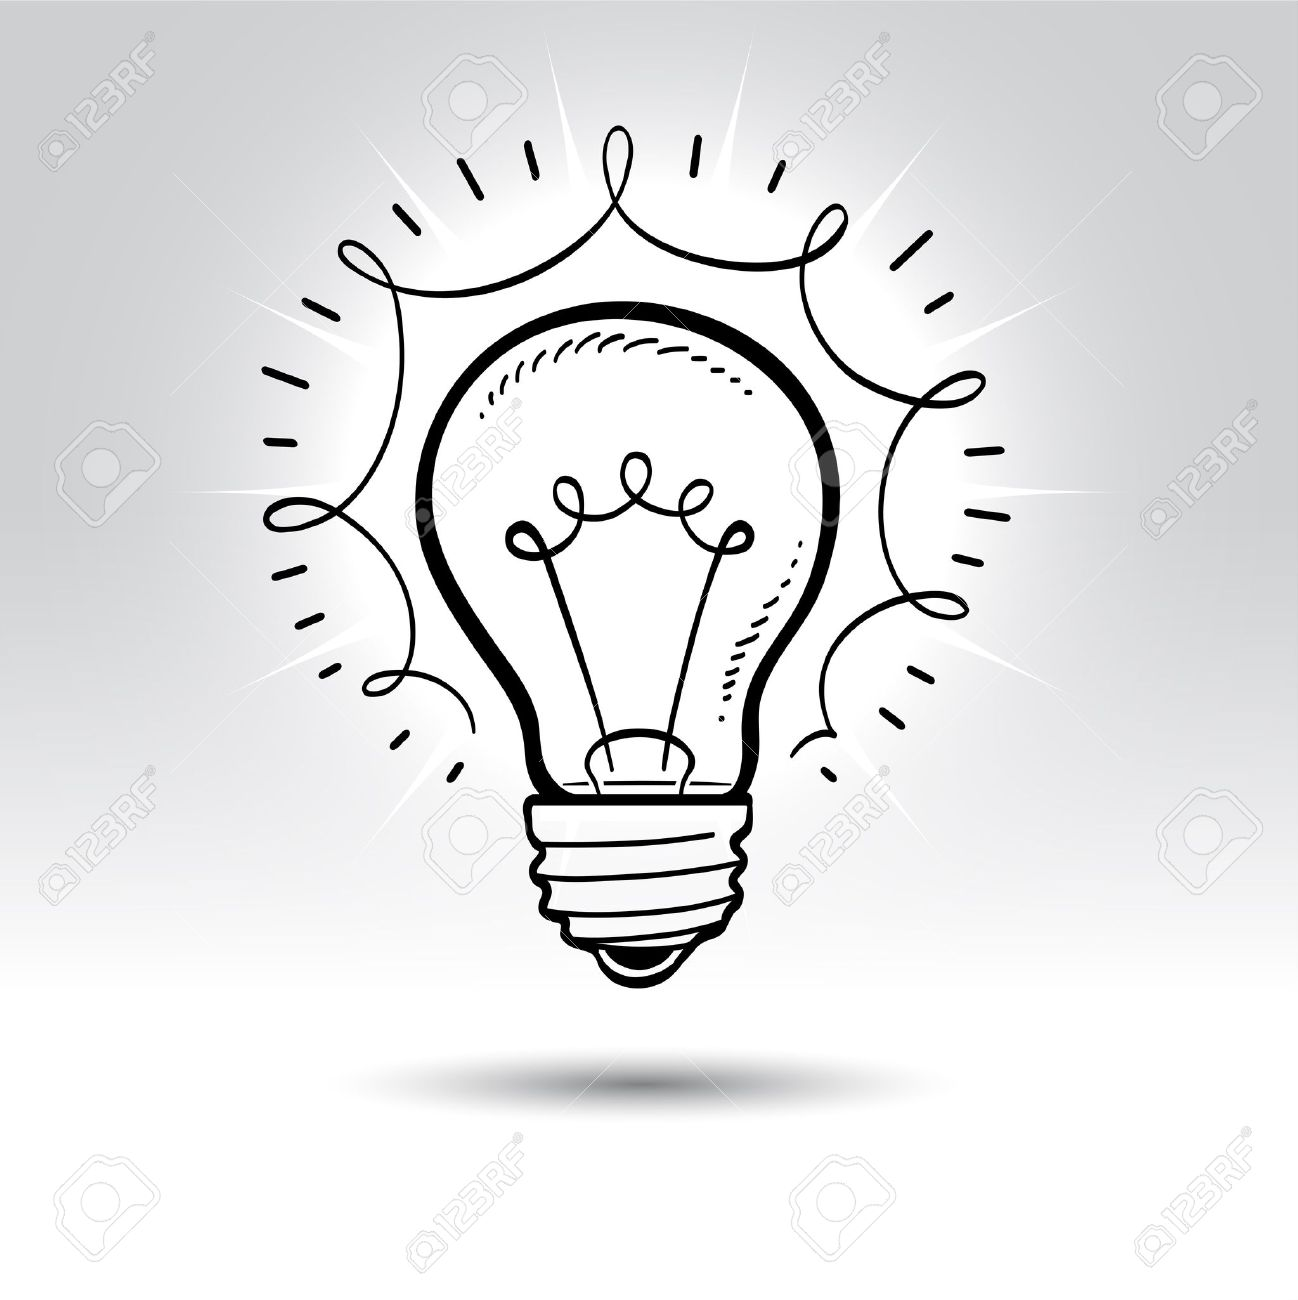 Light Bulb Drawing. Royalty Free Cliparts, Vectors, And Stock ... for Lamp Bulb Drawing  565ane